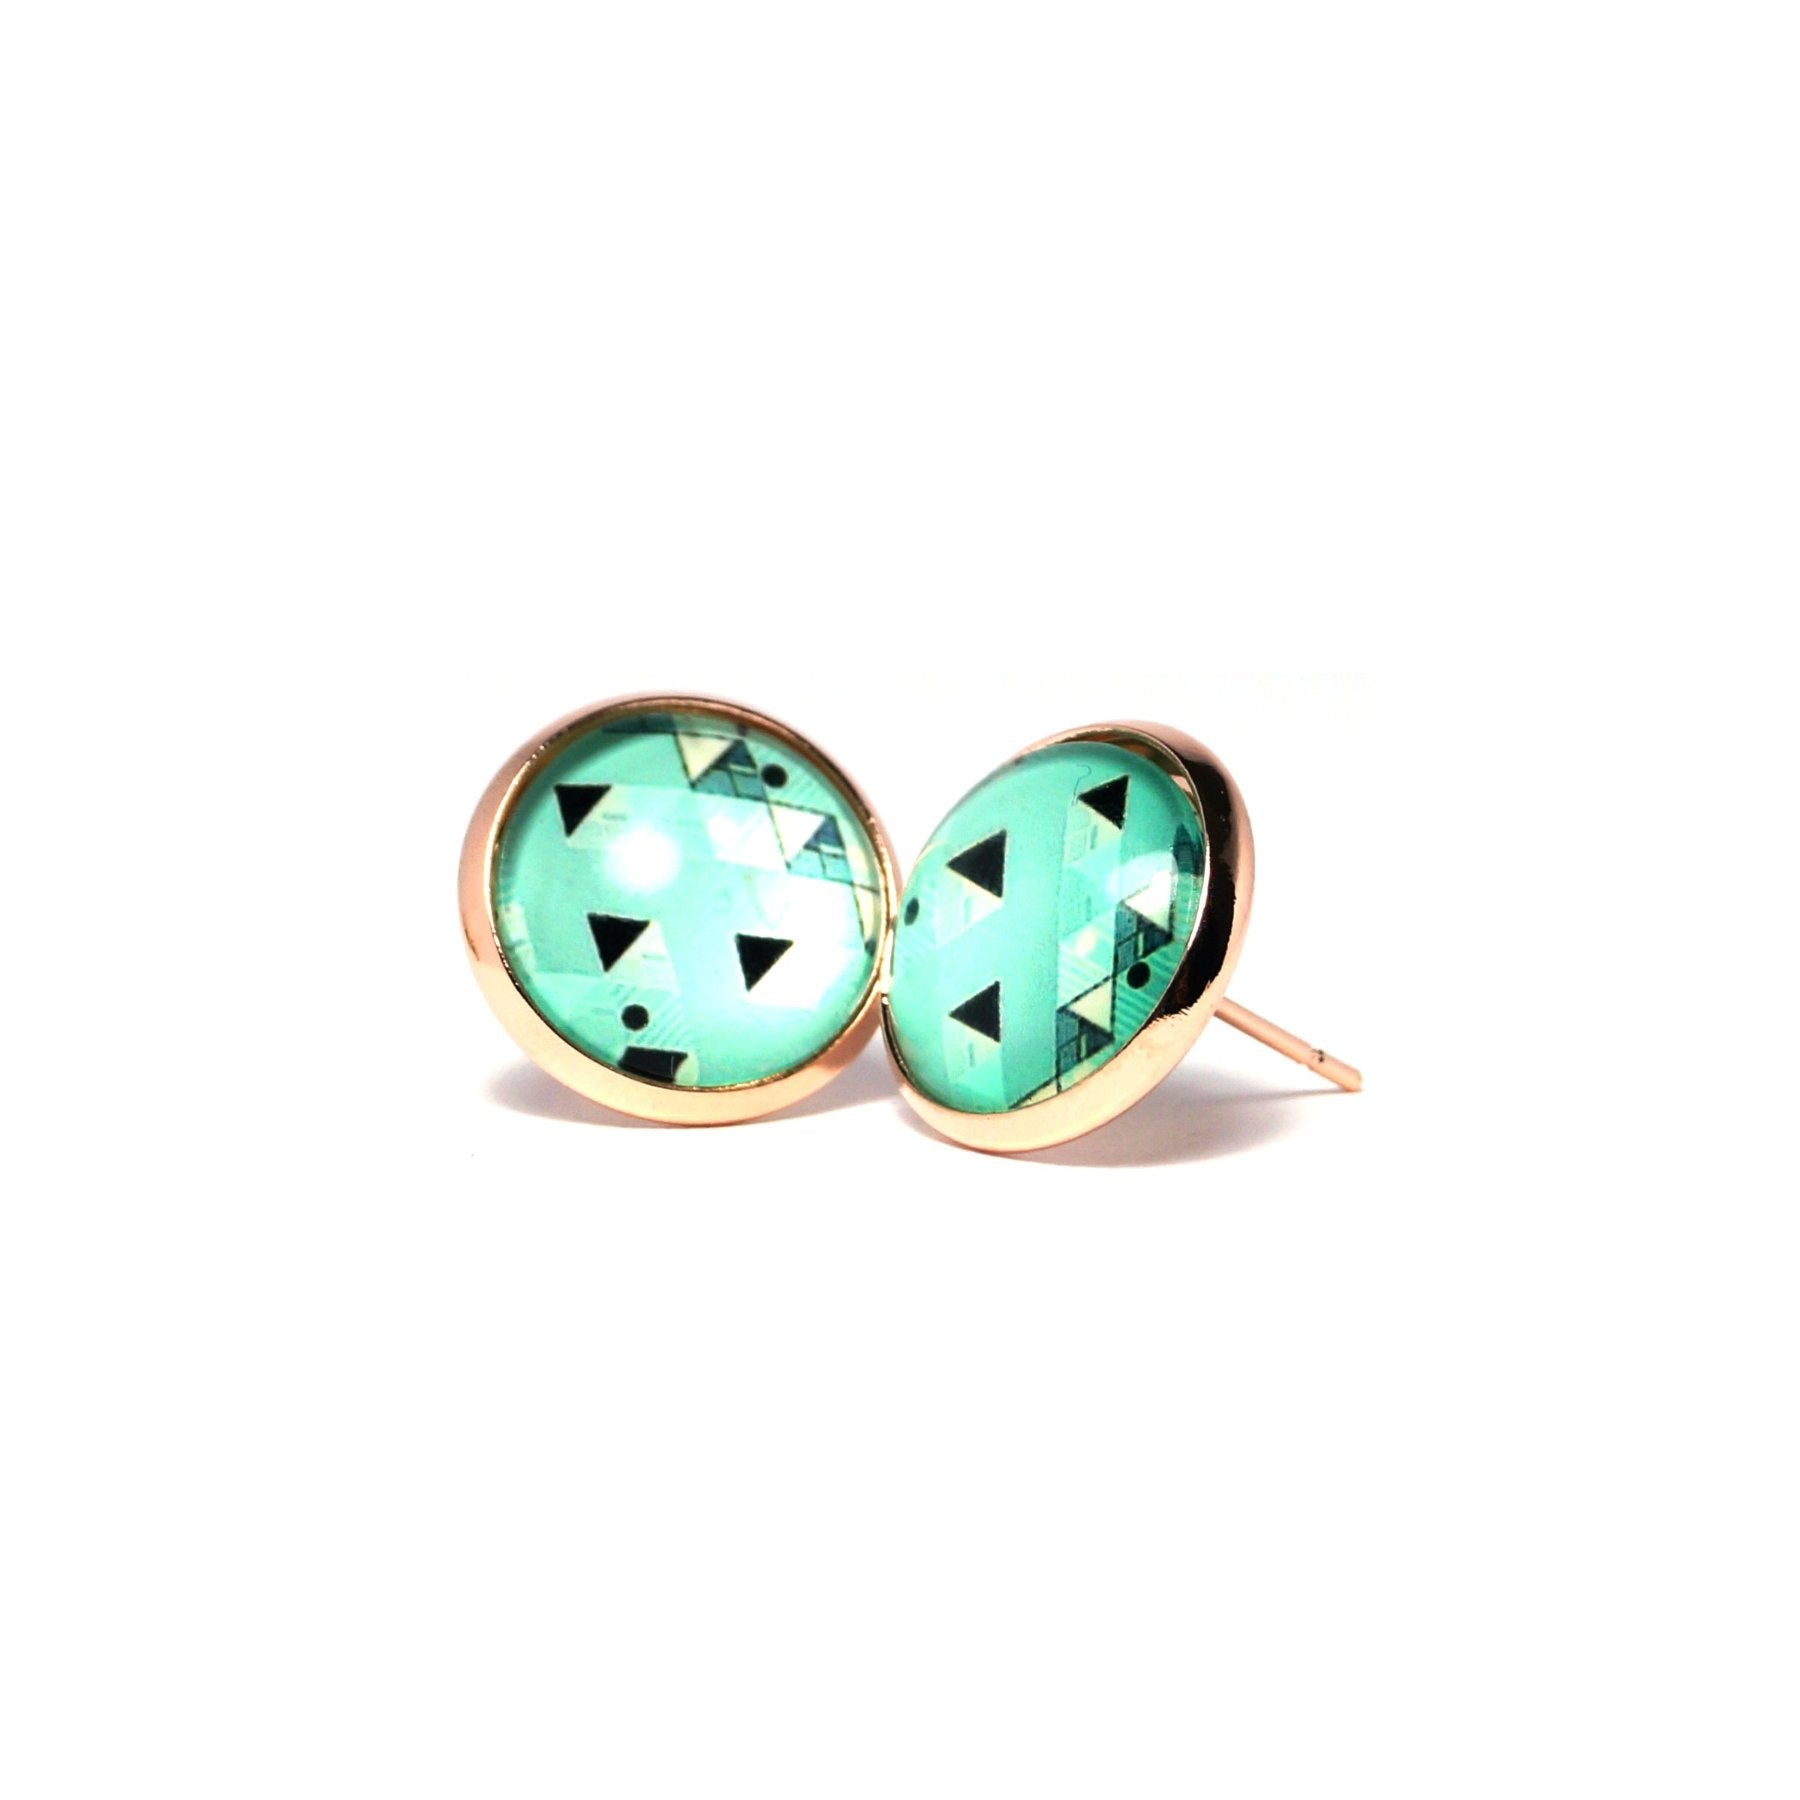 Shop Pastel Green Geometric Stud Earrings (14mm)-Jarvi